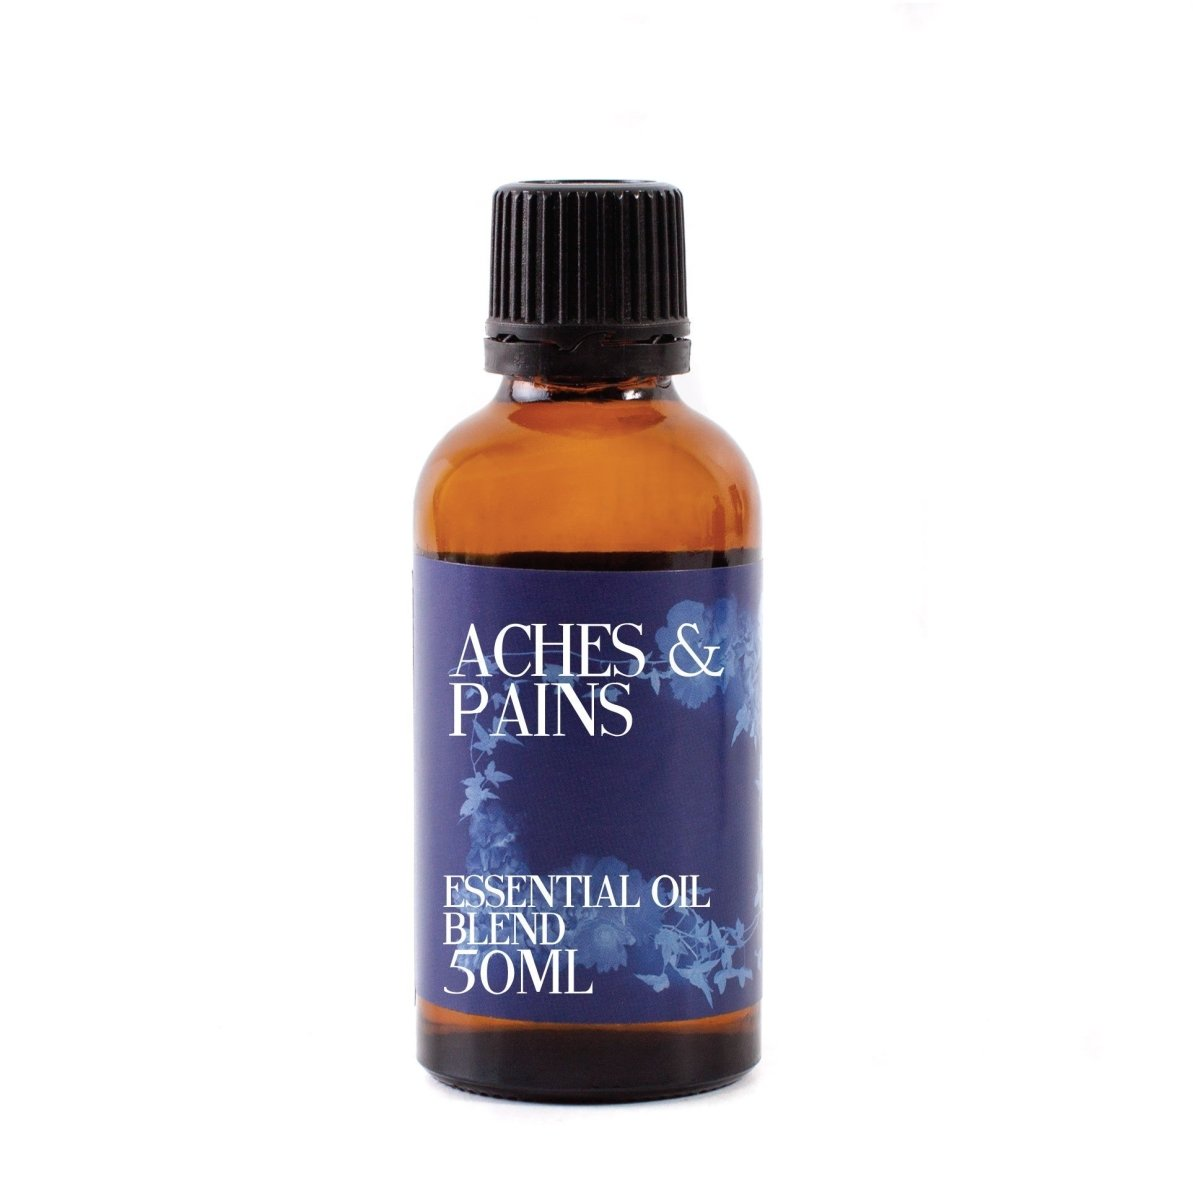 Aches and Pains - Essential Oil Blends - Mystic Moments UK